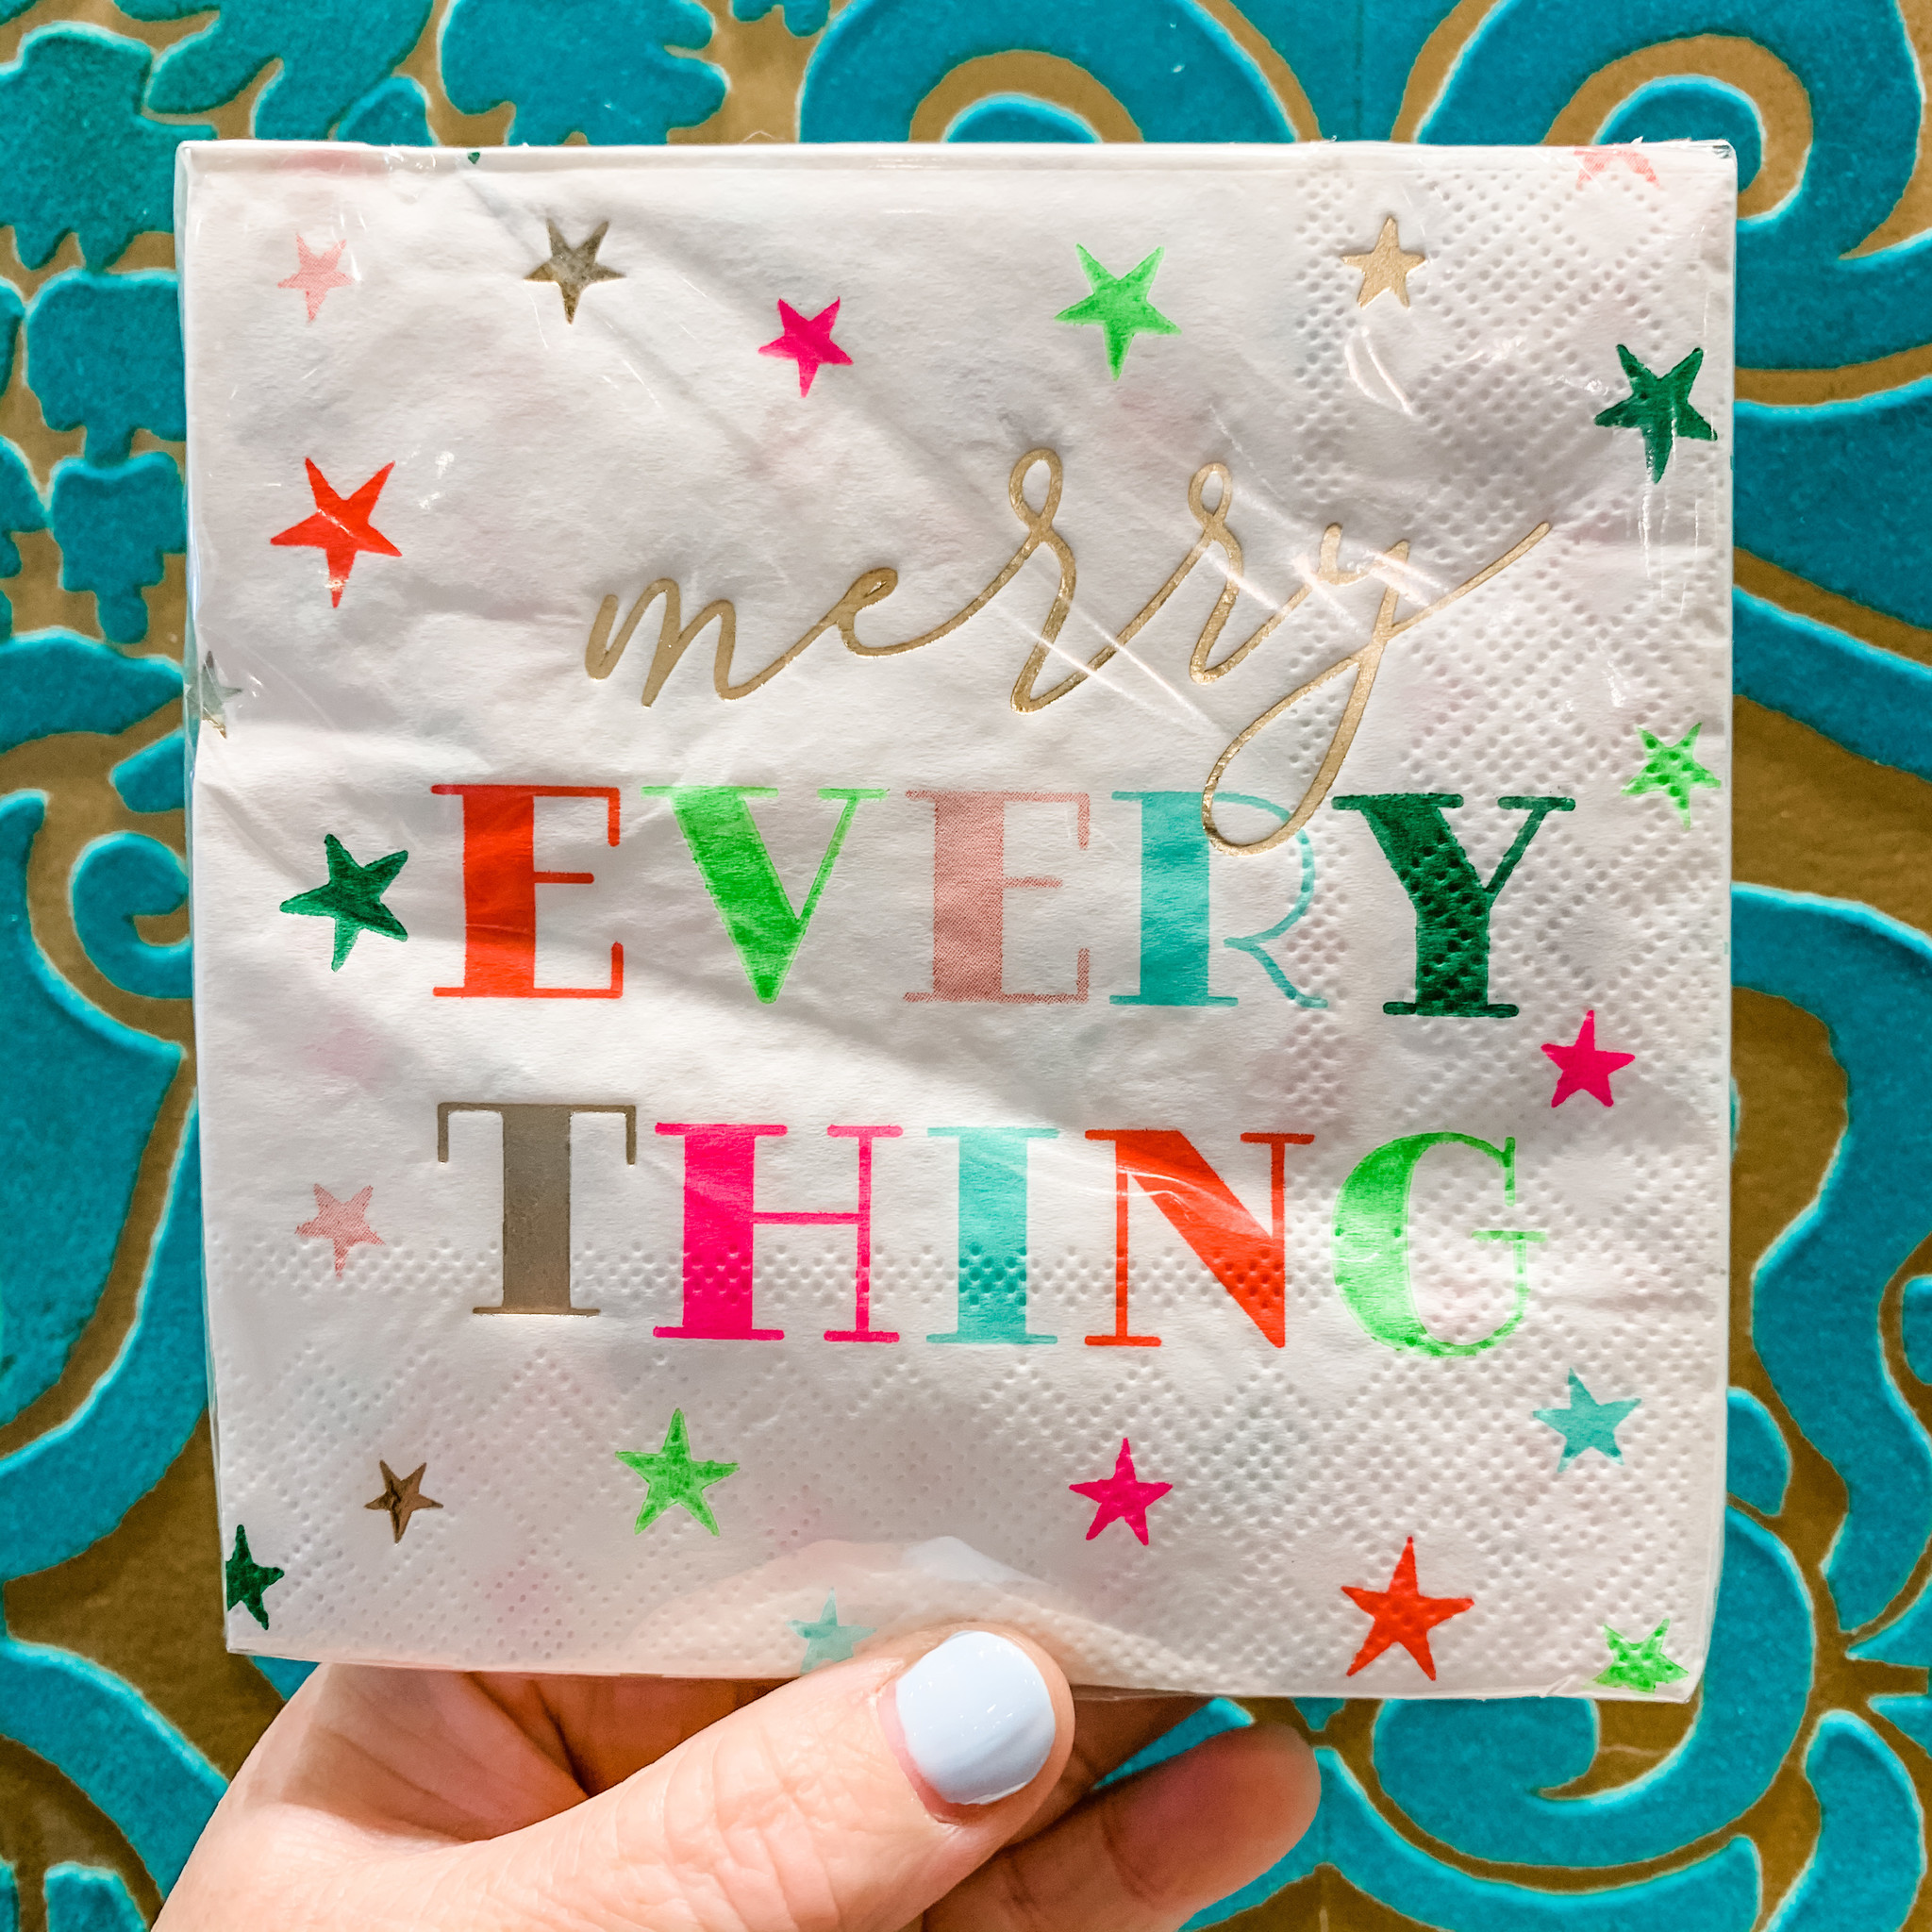 Slant Merry Everything Holiday Napkins